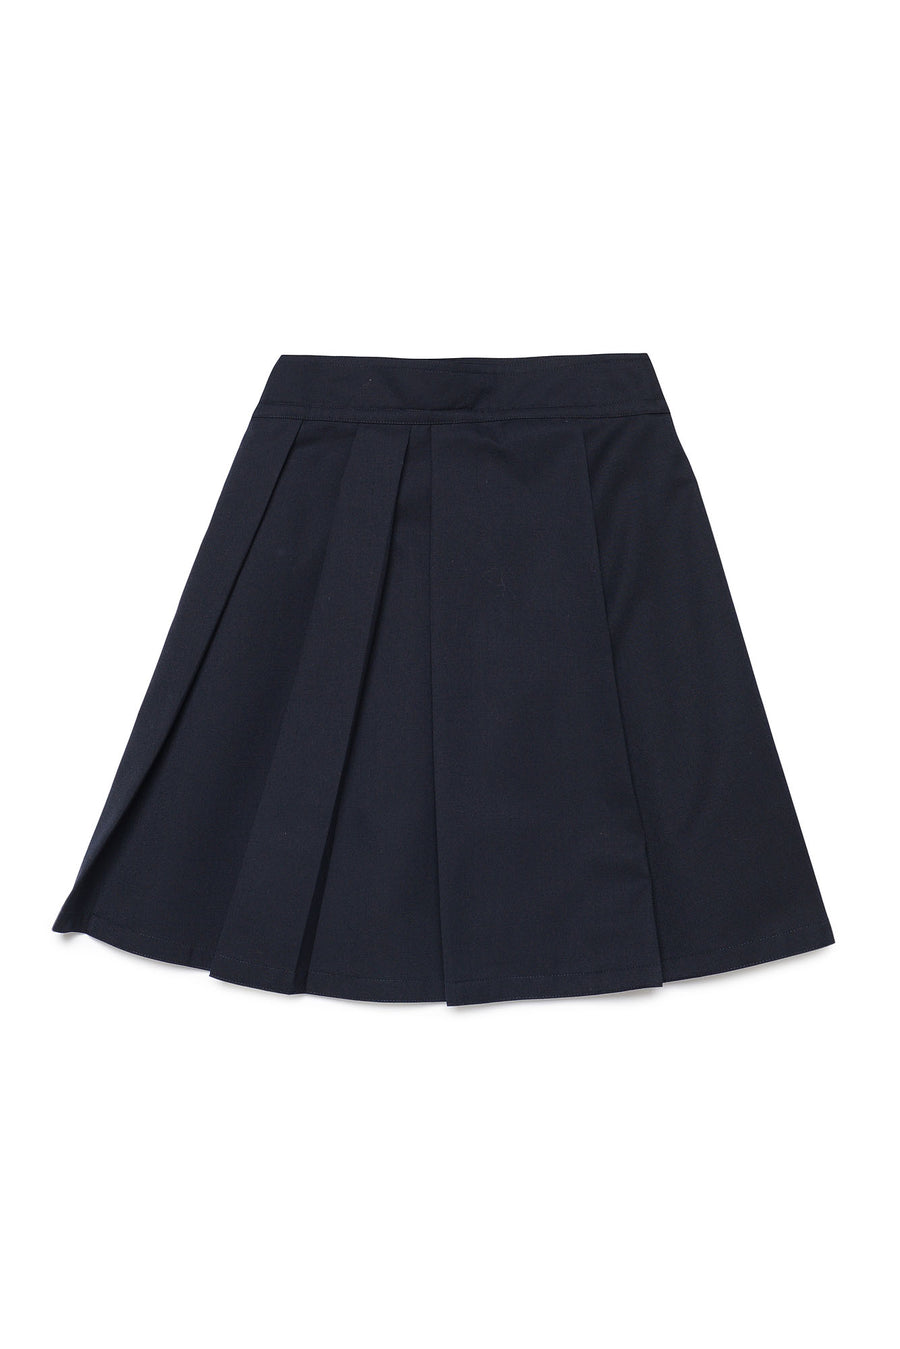 Black Pleat Skirt by Marni